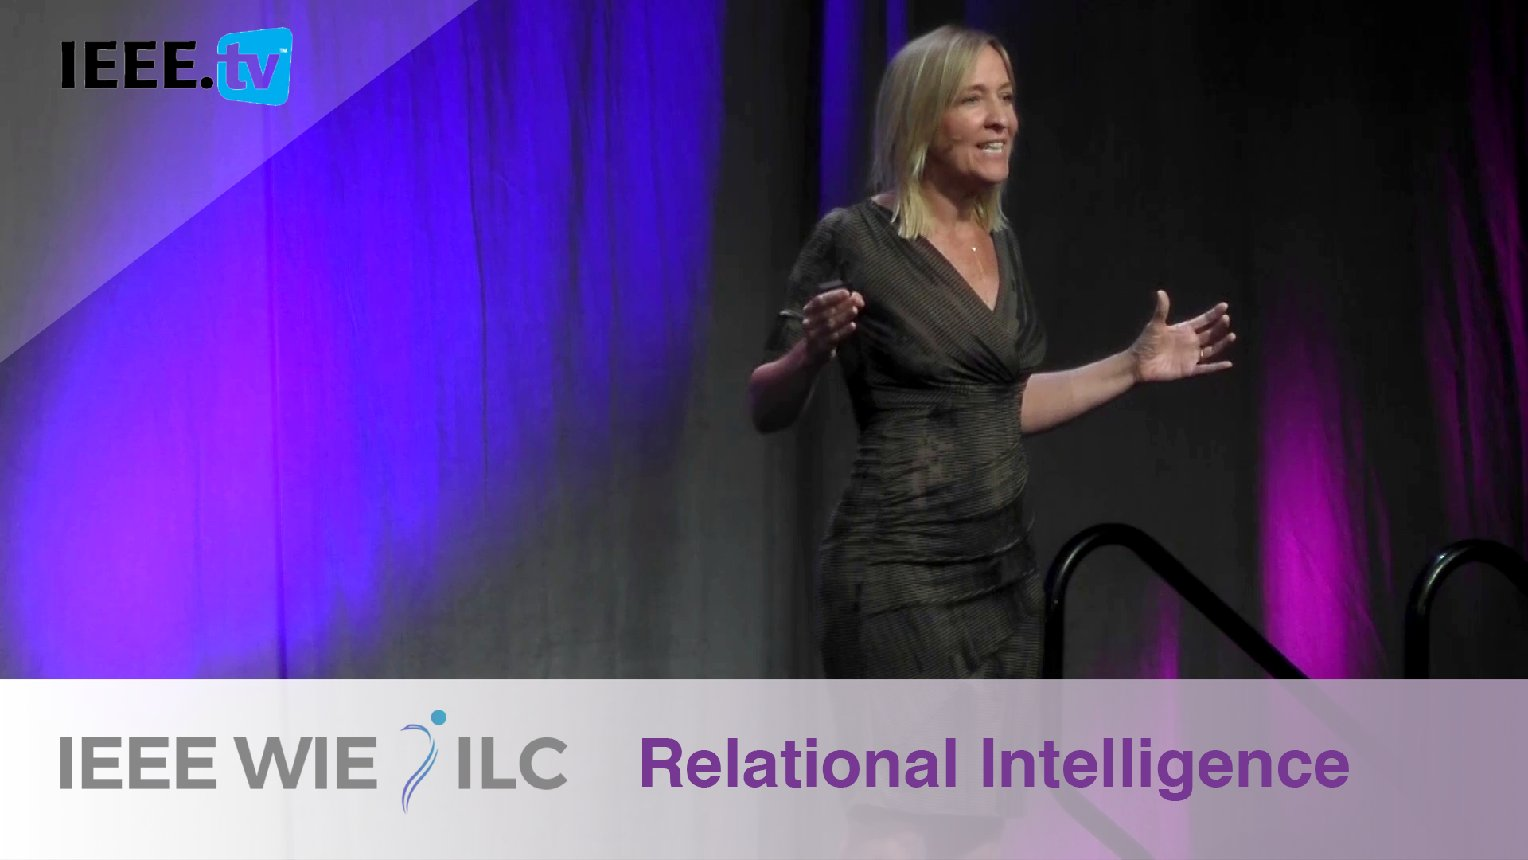 Relational Intelligence with Keynote Kerena Saltzman - IEEE WIE ILC 2017